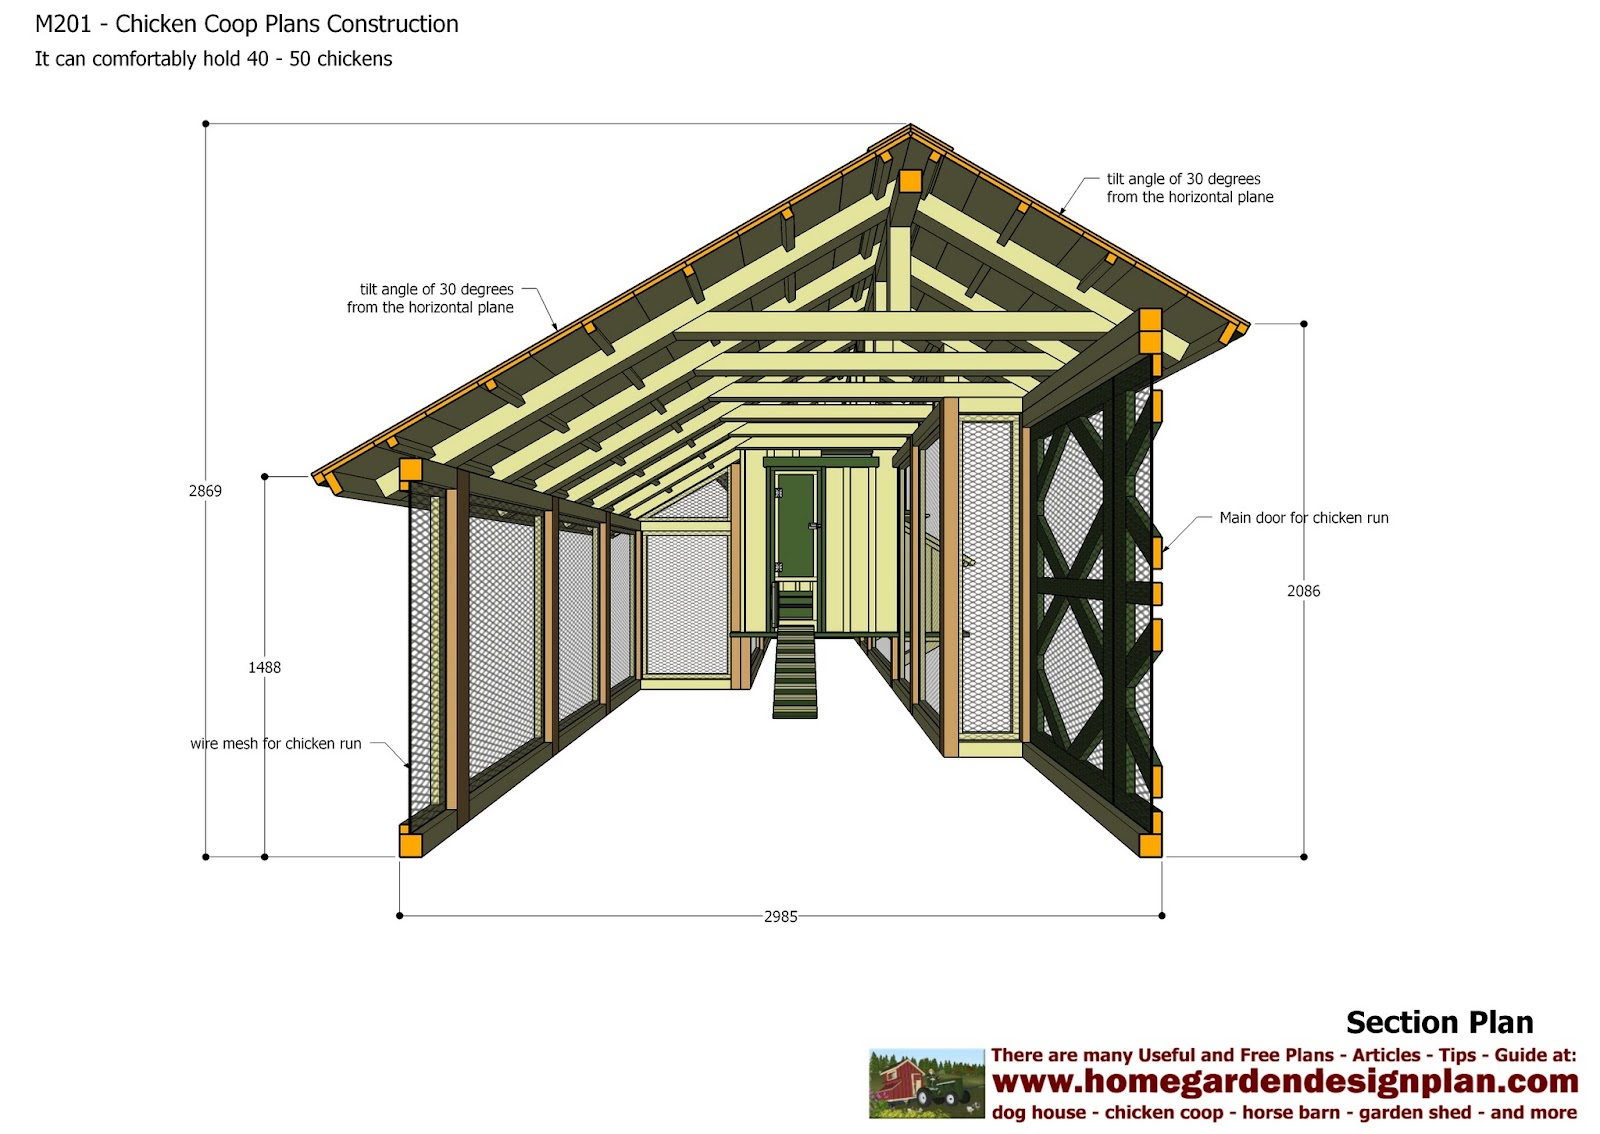 Chicken House Plans For 50 Chickens home garden plans: m201 - chicken coop plans construction